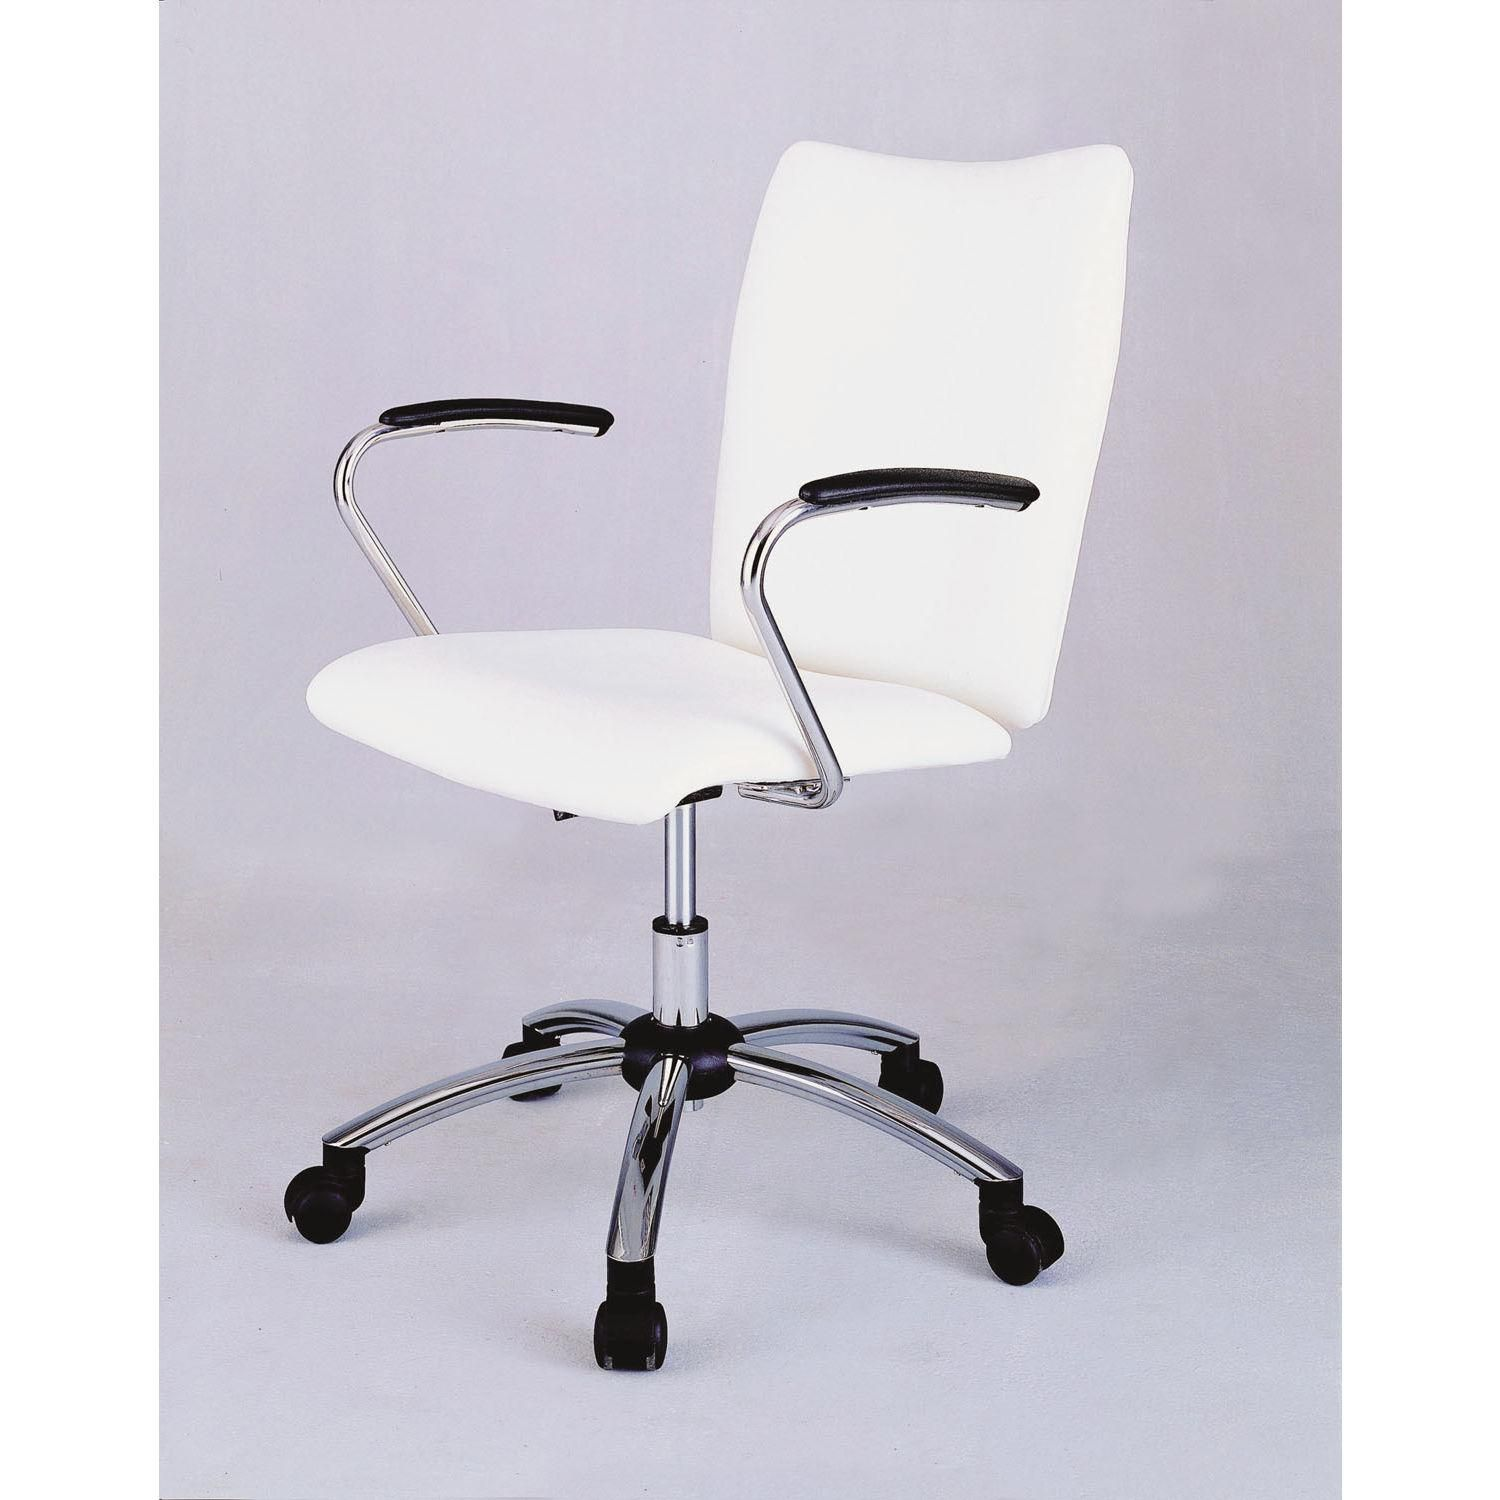 Desk Chairs For Teens Home Desk Design White Desk Chair White Rolling Desk Chair Girls Desk Chair